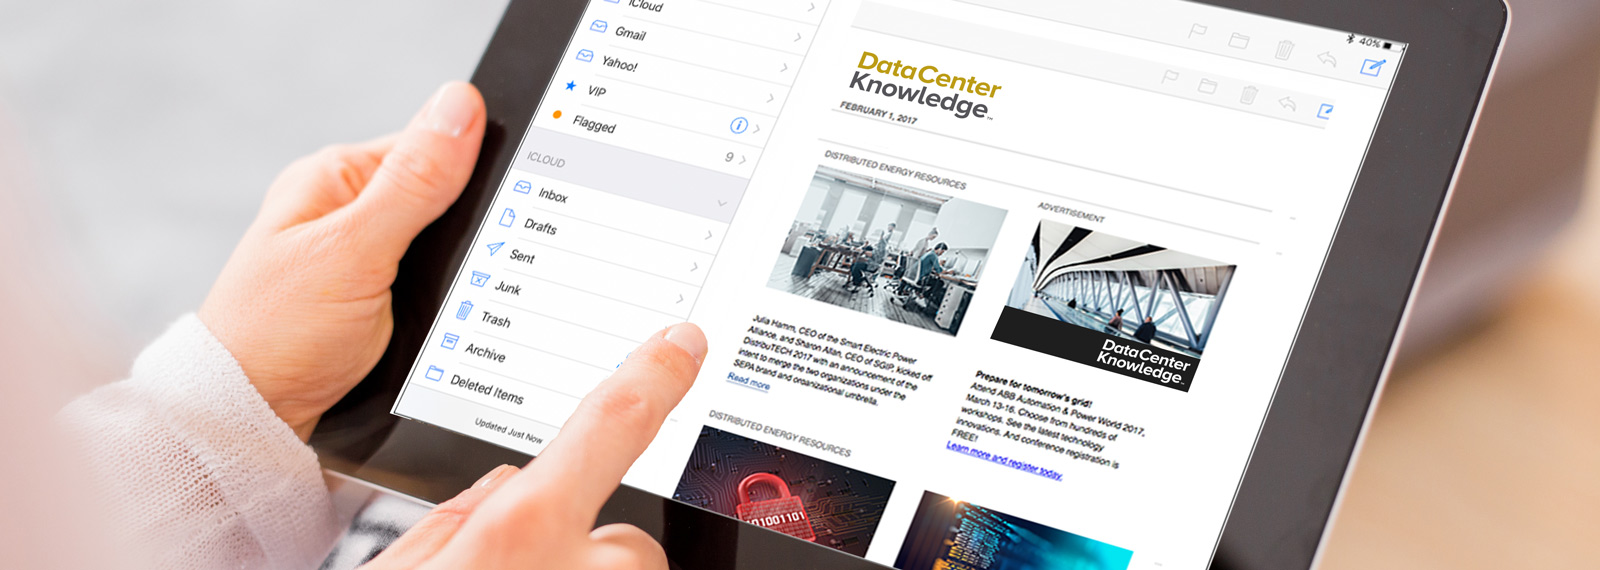 subscribe to newsletters data center knowledge